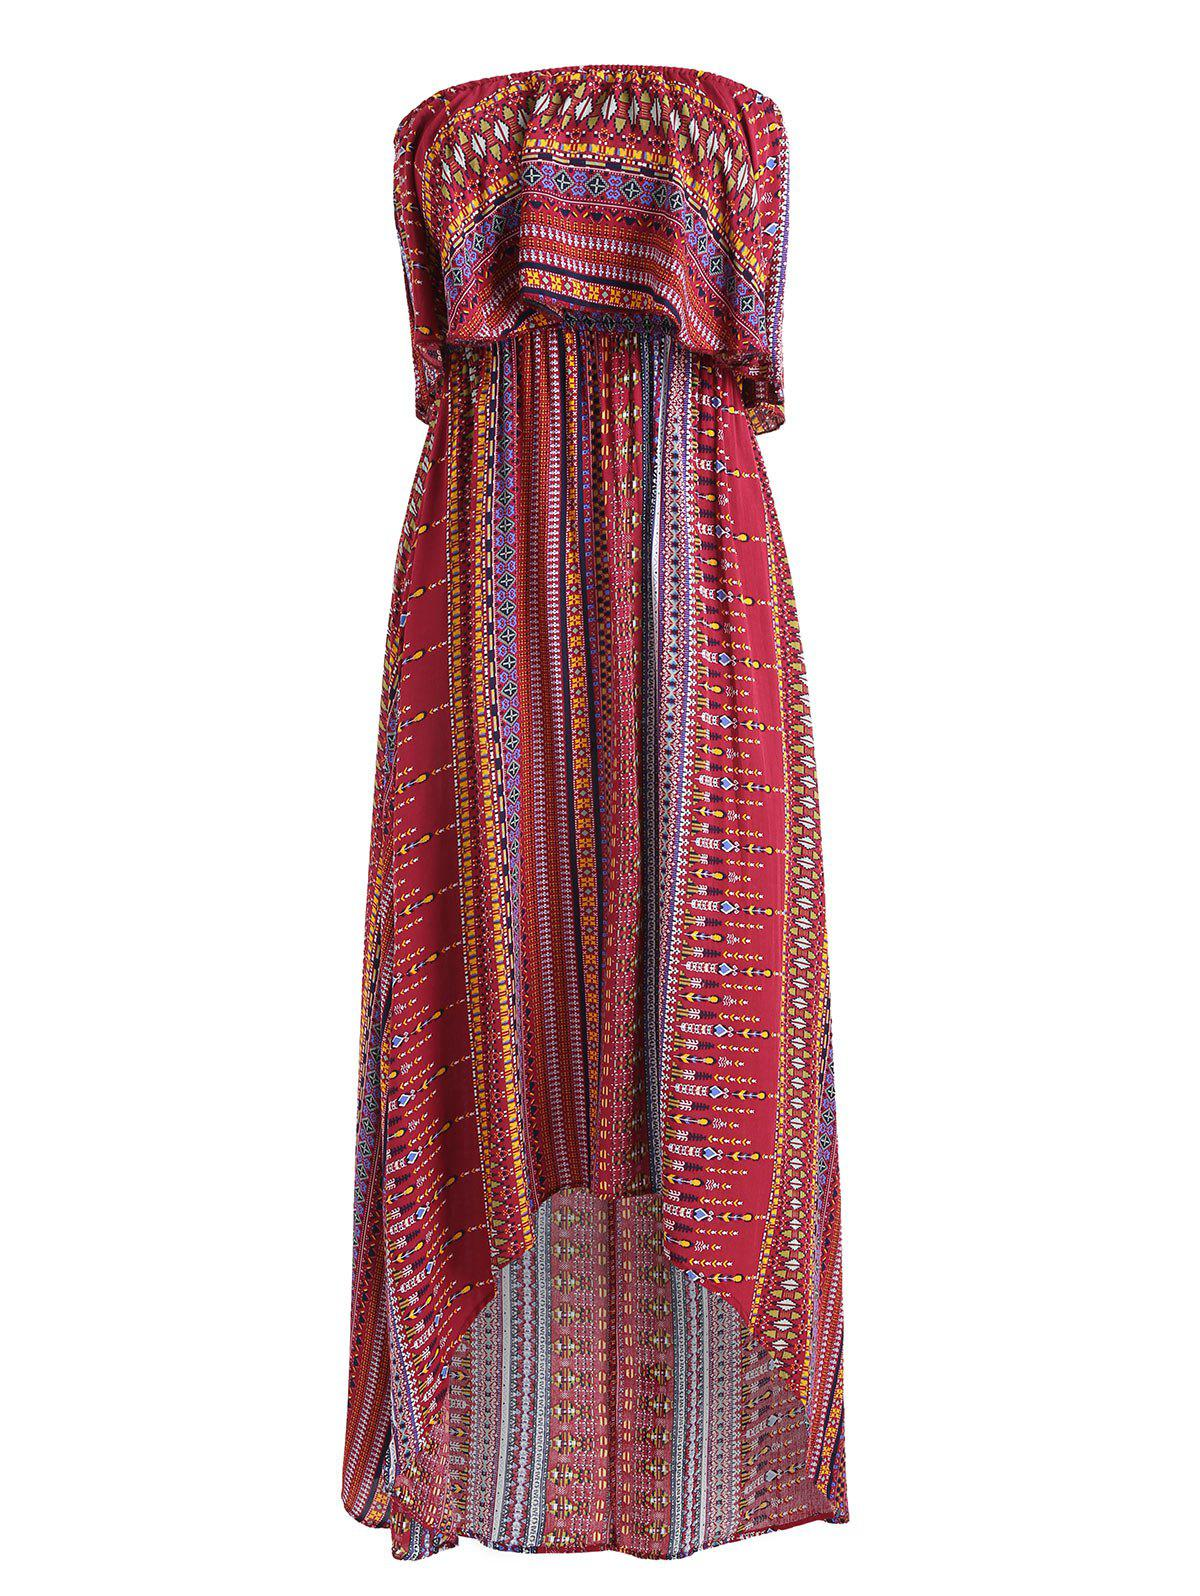 Shop Tribal Print High Low Strapless Boho Dress